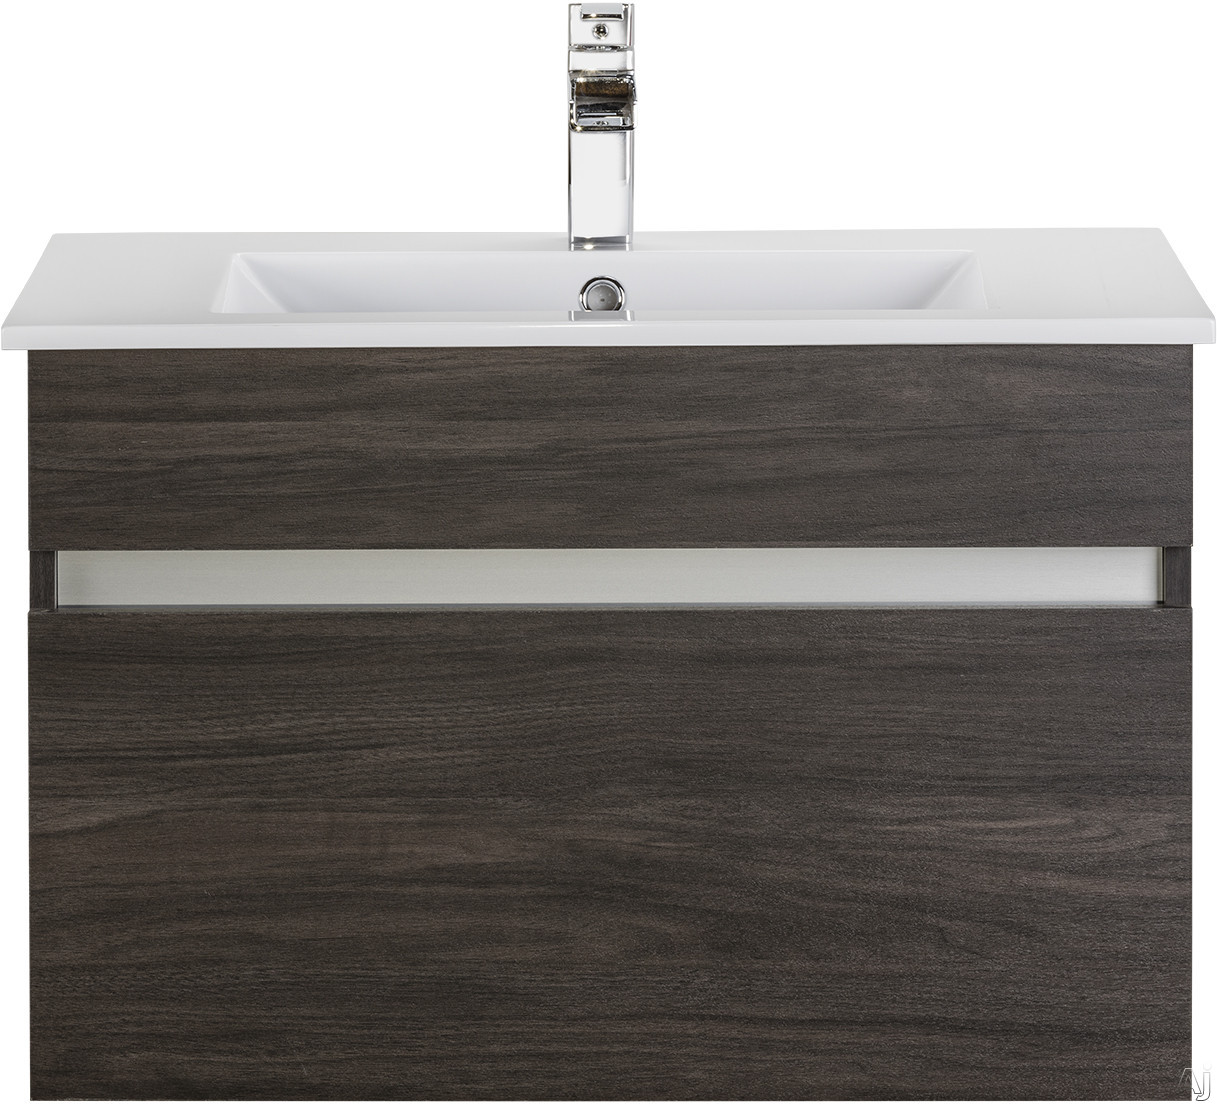 Cutler Kitchen & Bath Ivory FVCHKA30 30 Inch Wall Mount Bathroom Vanity with 1 Soft Close Drawer, Countertop and Sink and European Soft-Close Hardware: Karoo Ash